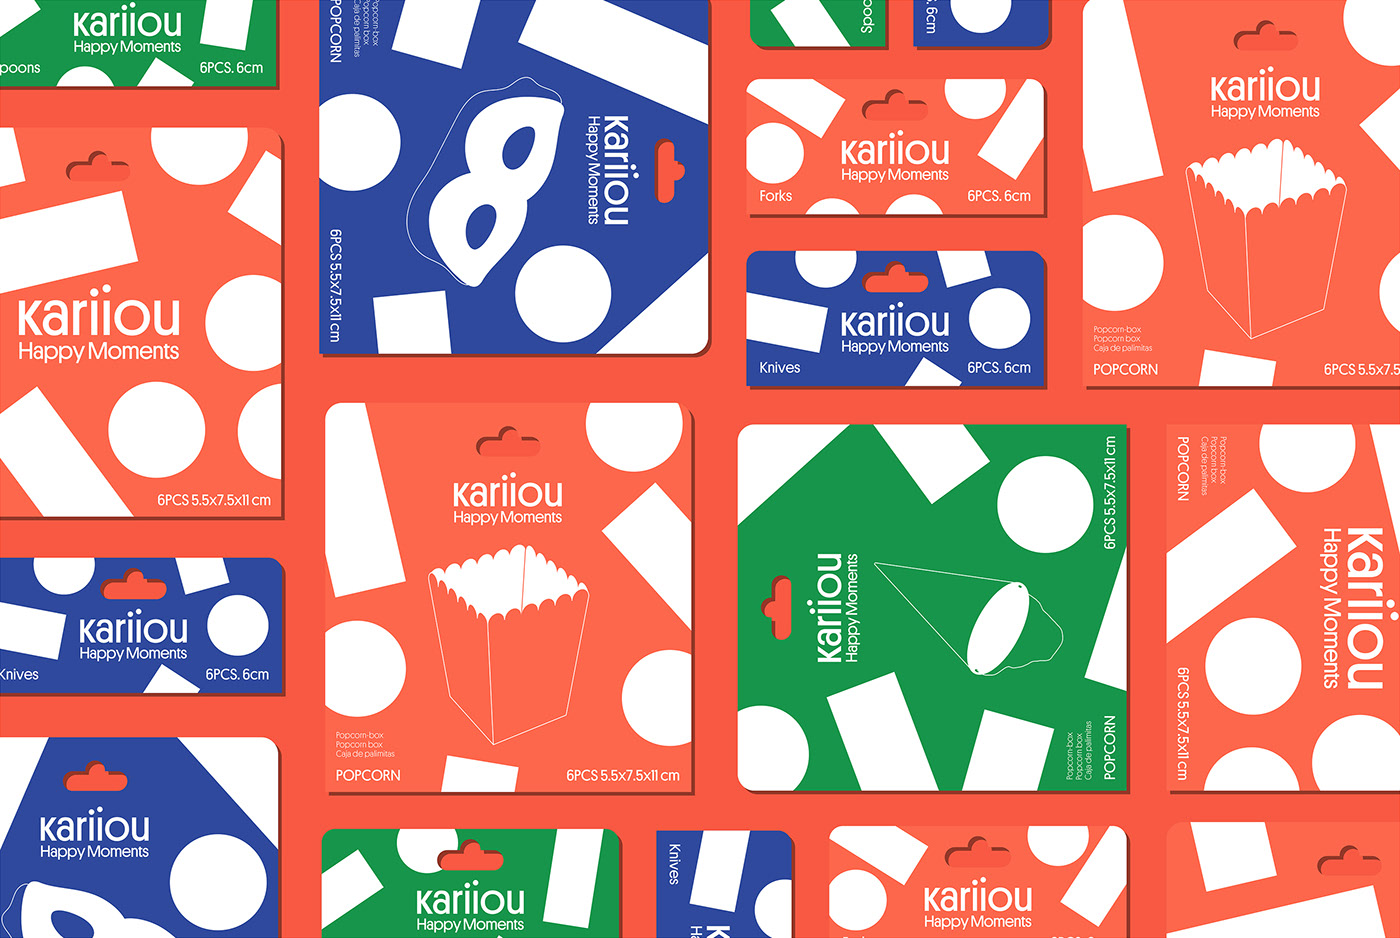 Kariiou branding by Toormix Design Agency.